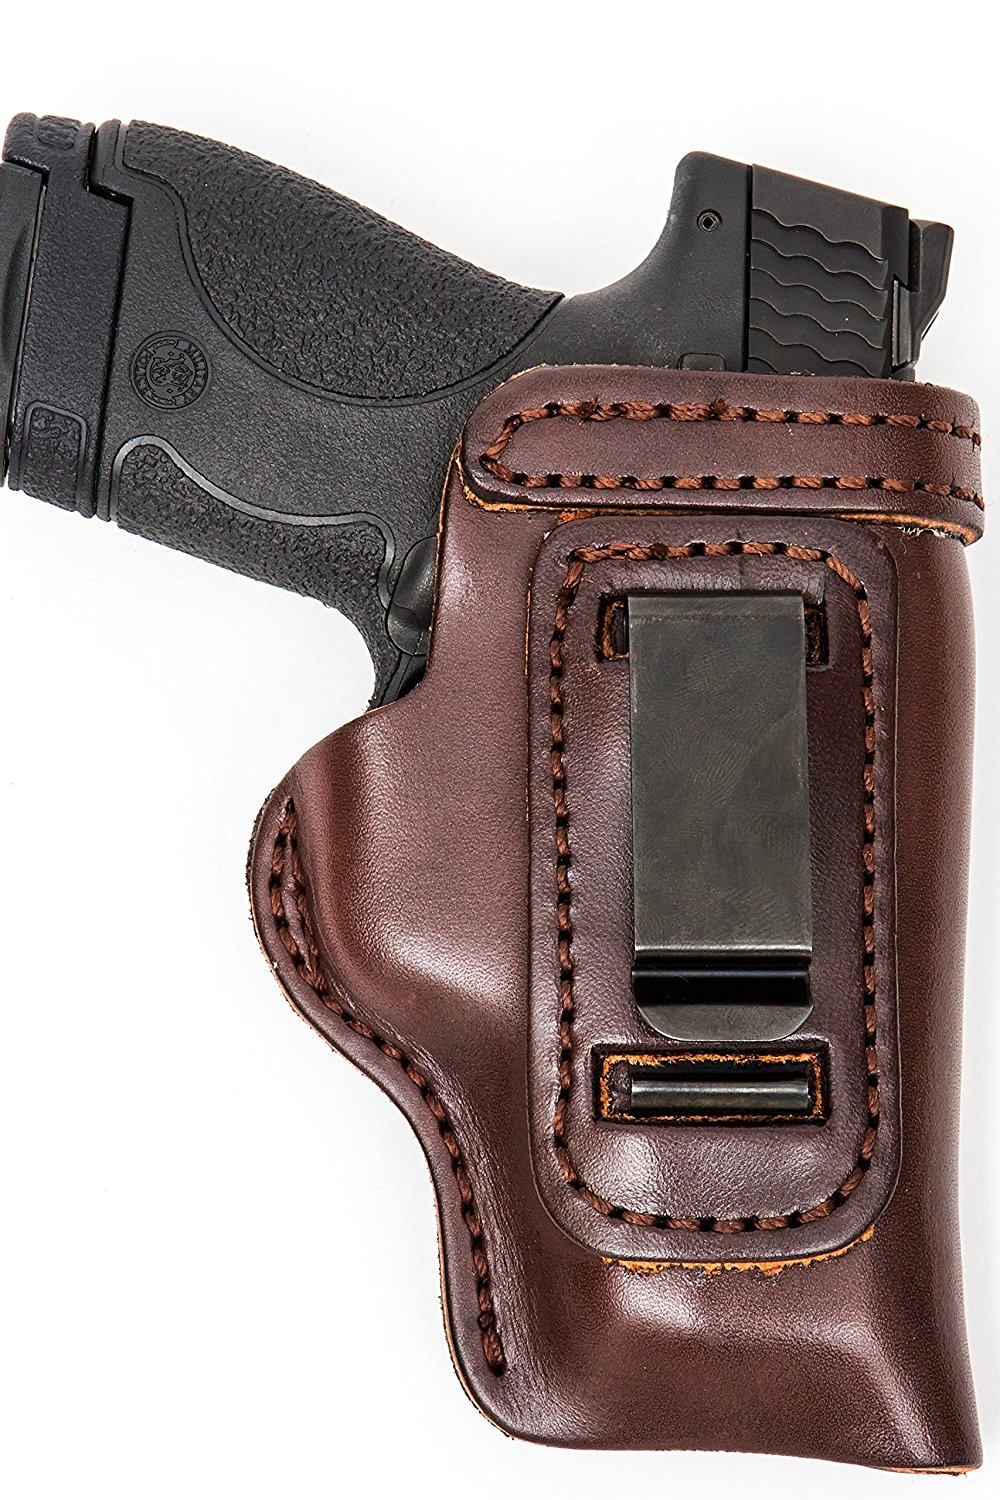 The Holster Store: Leather Gun Holster For Kimber Micro 9 380 IWB or OWB Leather Gun Holster RH LH IWB Inside The Waistband RH Right Hand or LH Left Hand Black or Brown HD